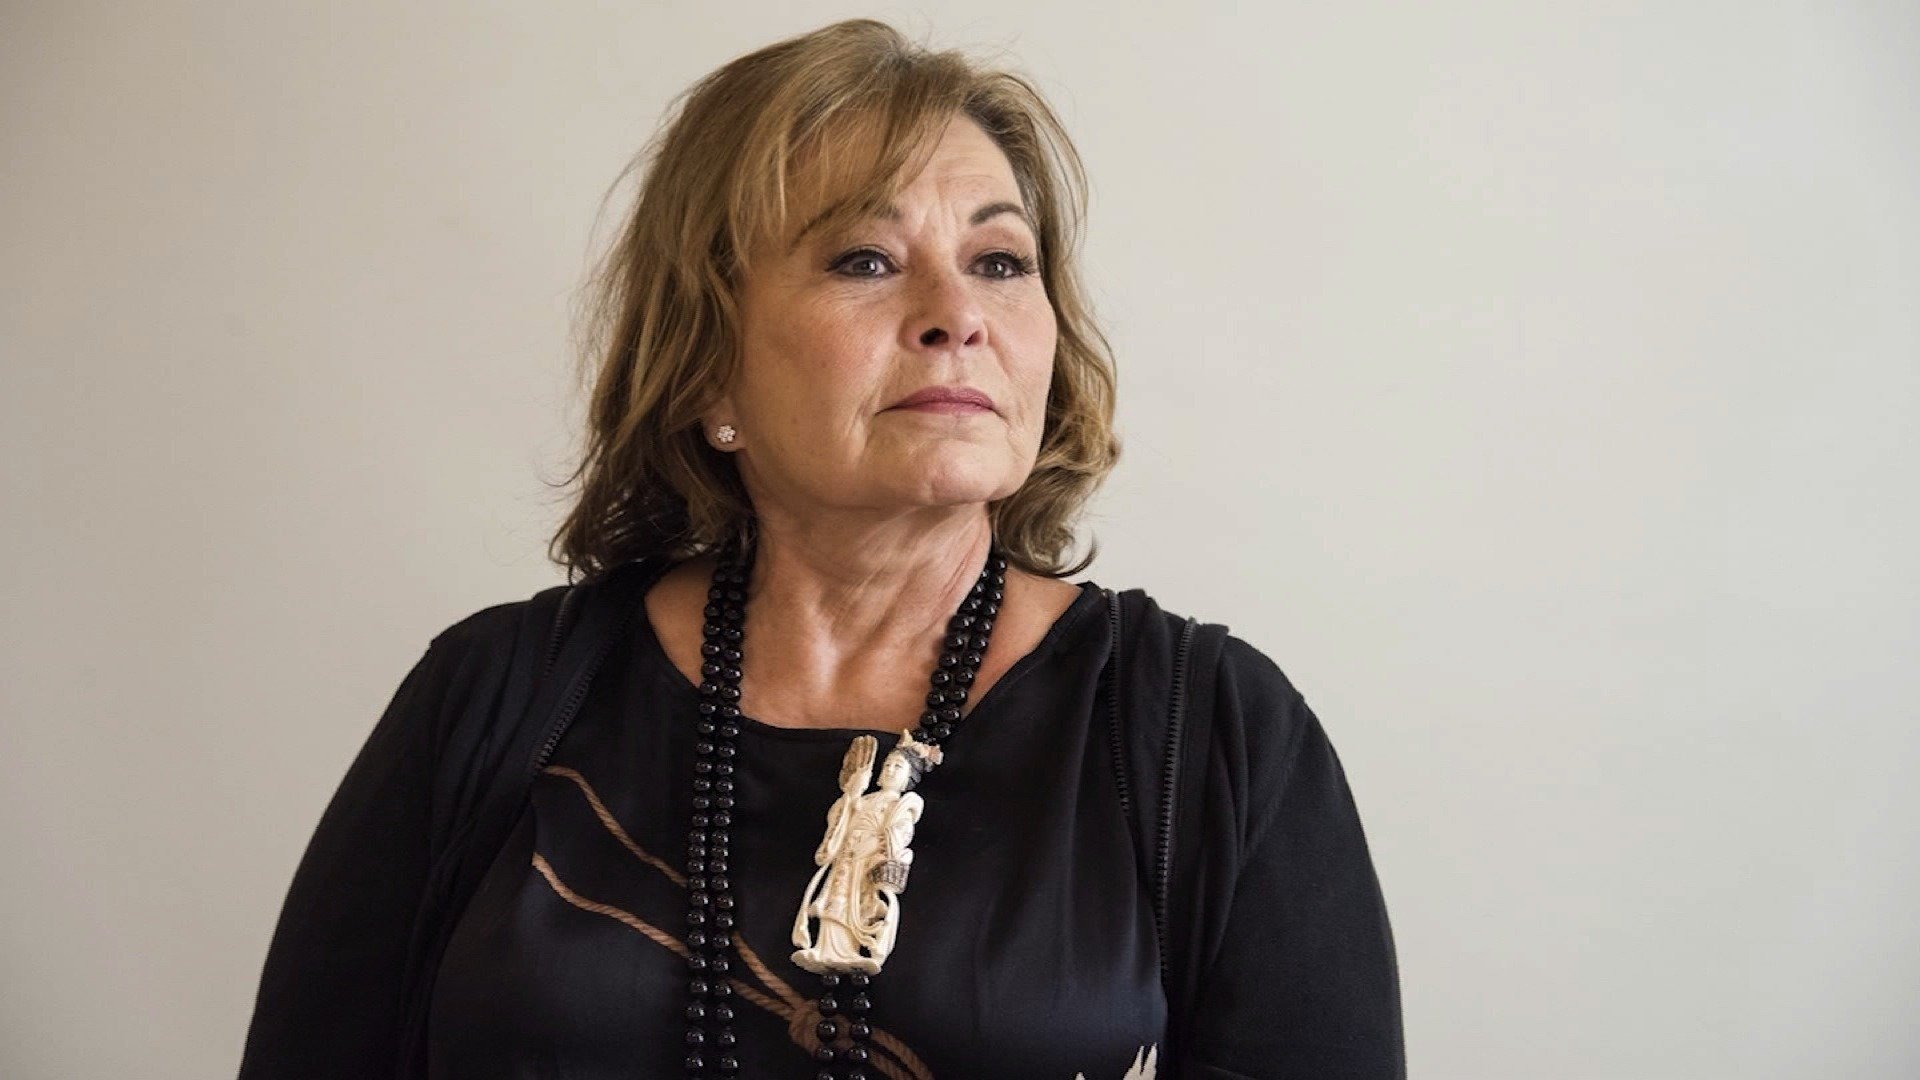 After announcing she was planning to do her first TV interview after her racist Twitter rant, Roseanne Barr now says she has thought better of it.